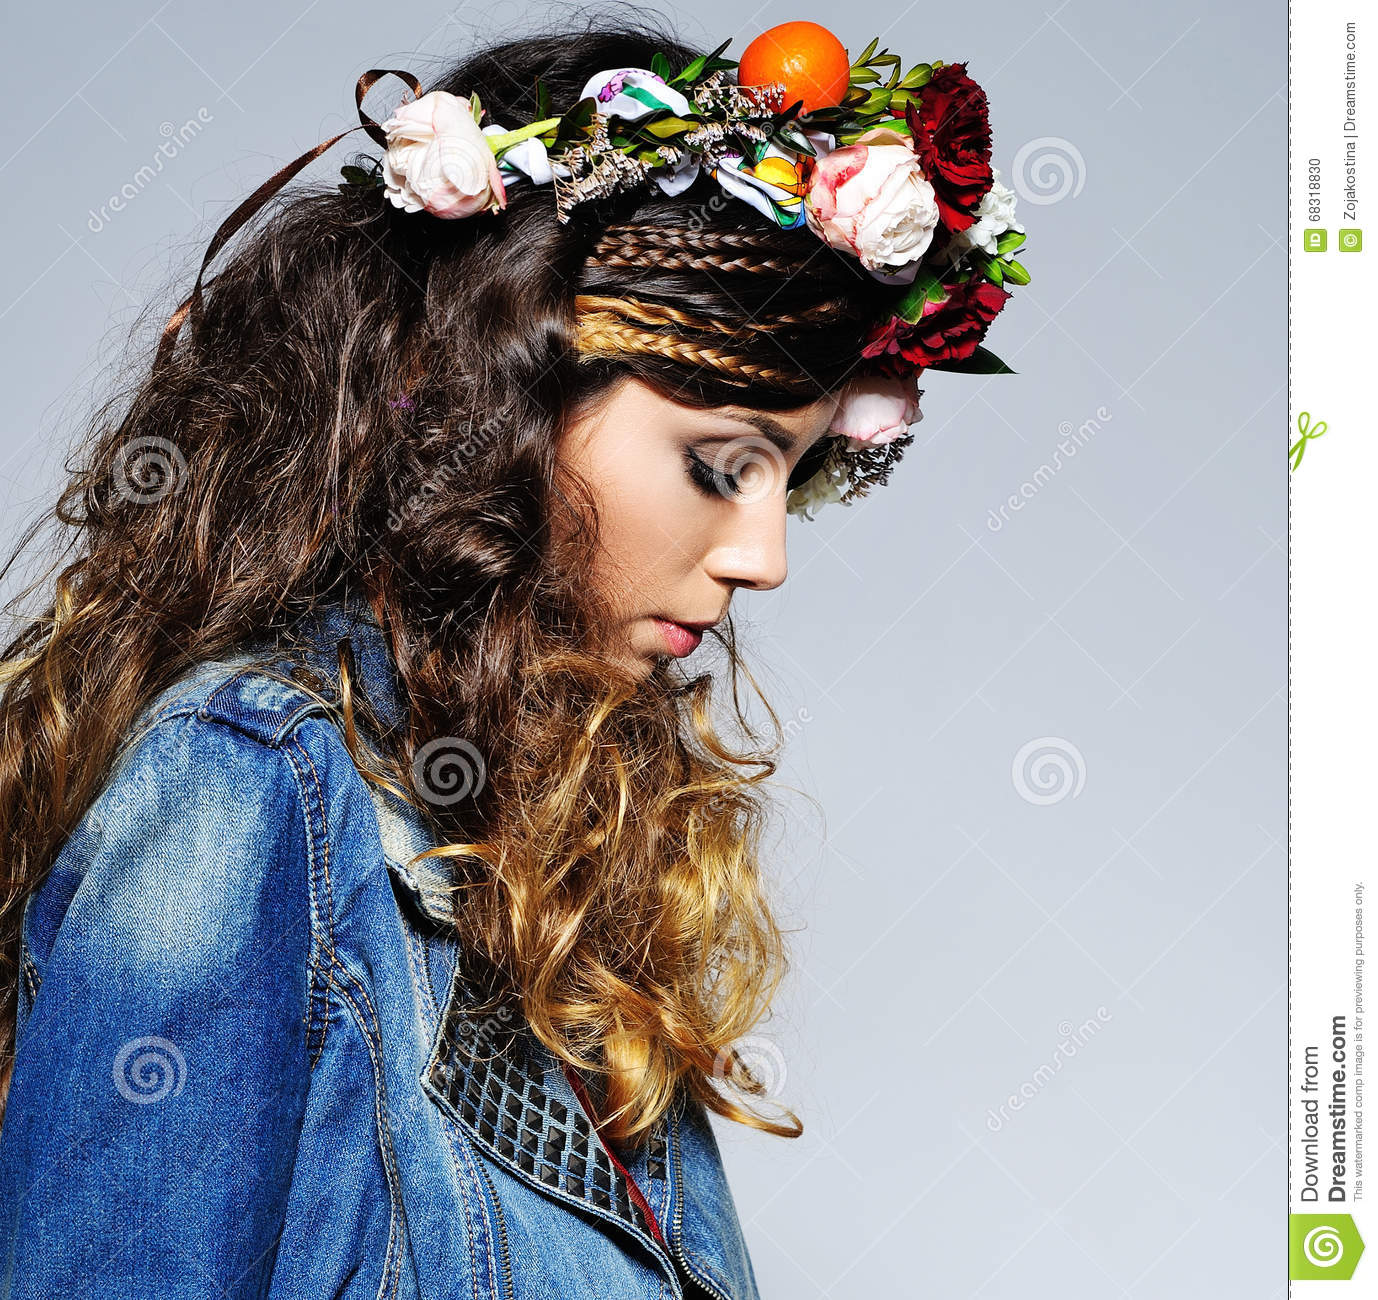 Volume Hair With Braids And Flower Crown Stock Photo Image Of Boho